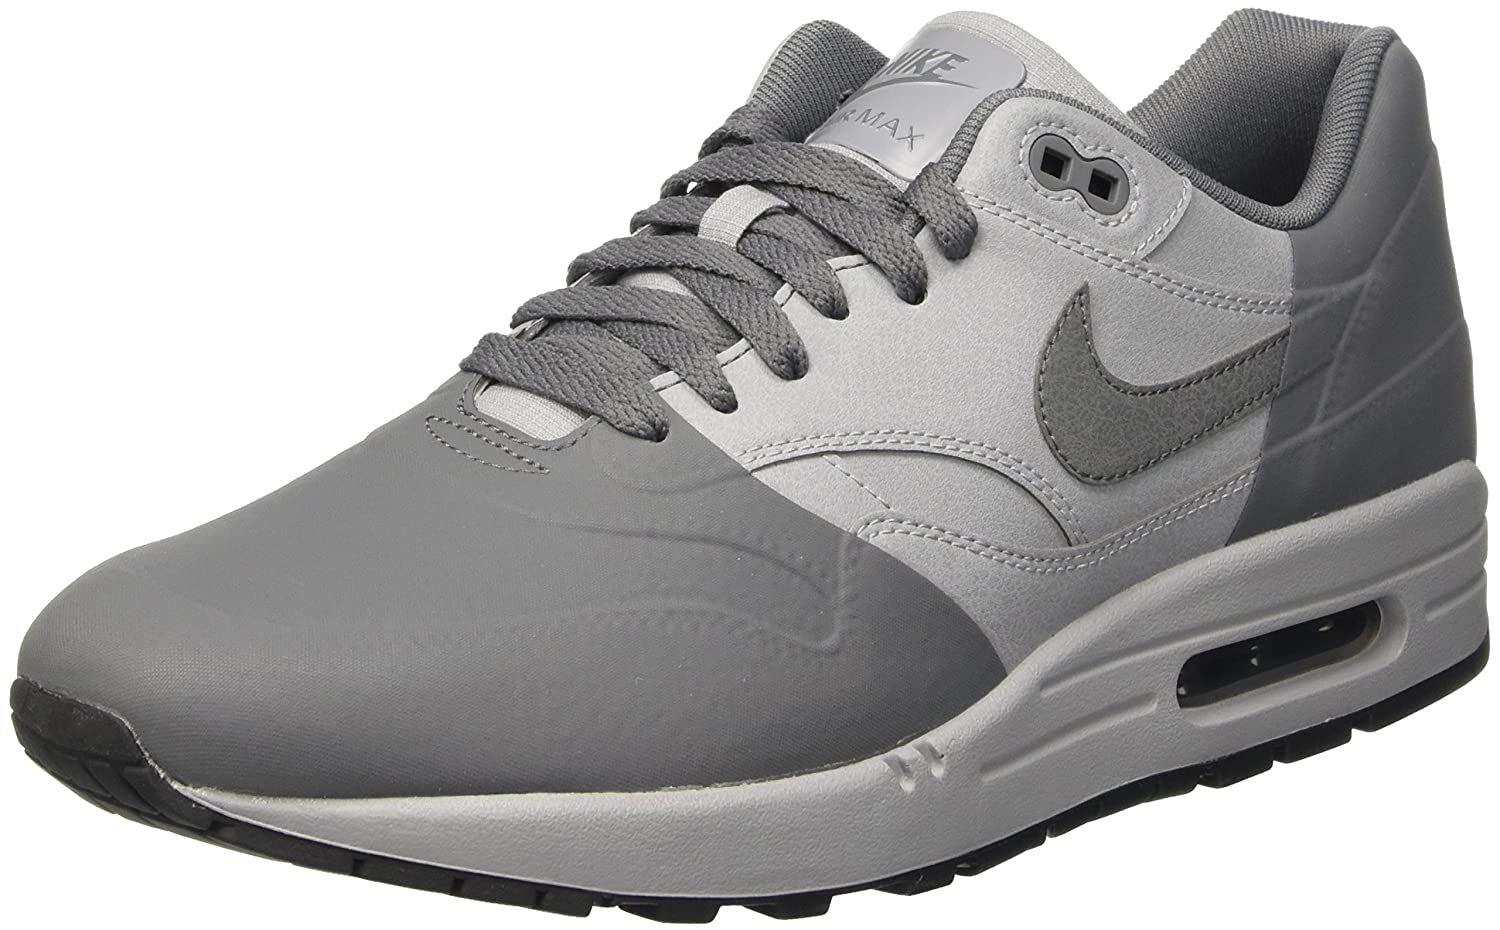 Nike Herren 858876-001 Turnschuhe  41 EU|Grau (Wolf Grey/Anthracite/Cool Grey)